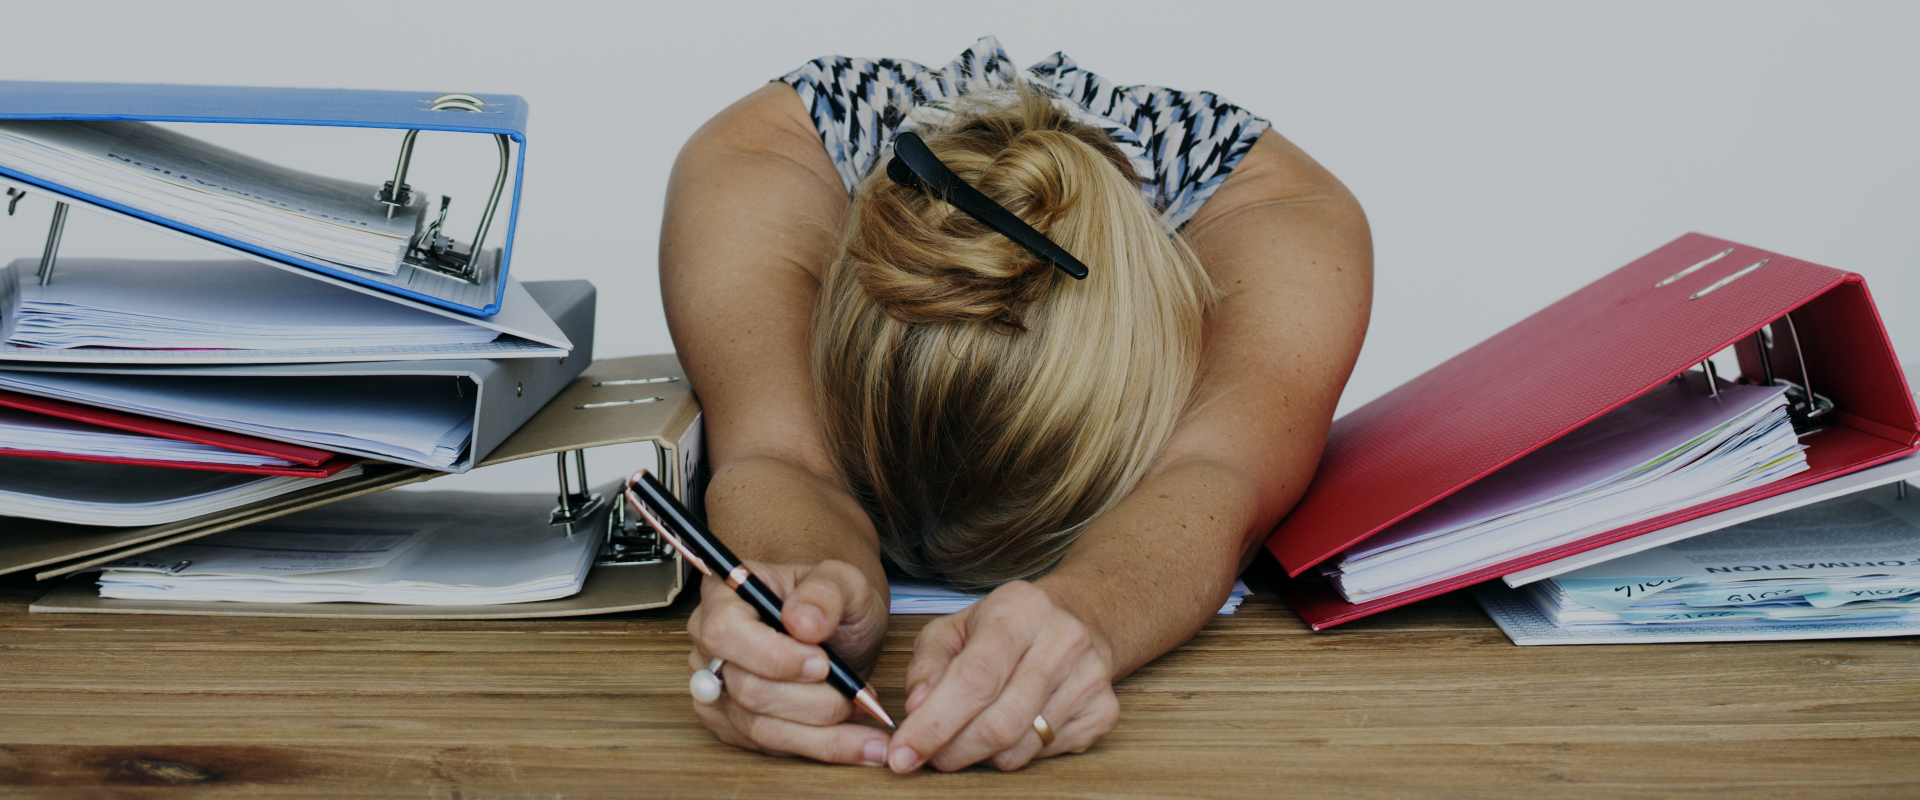 Employee with a burnout.What can you do?